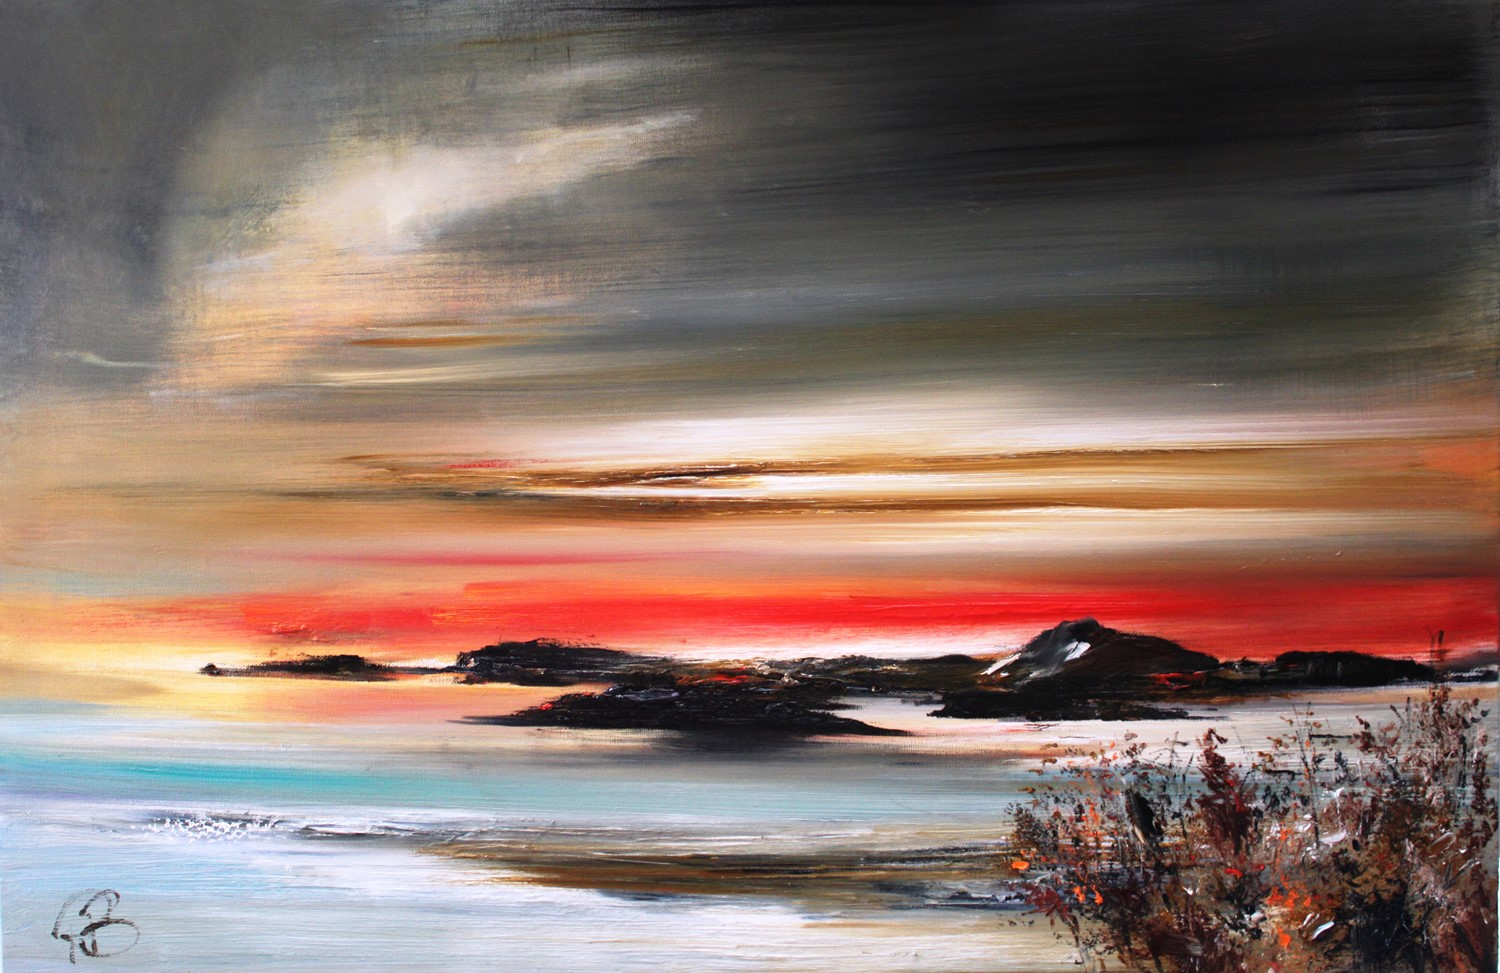 'The Isles at Sunset' by artist Rosanne Barr